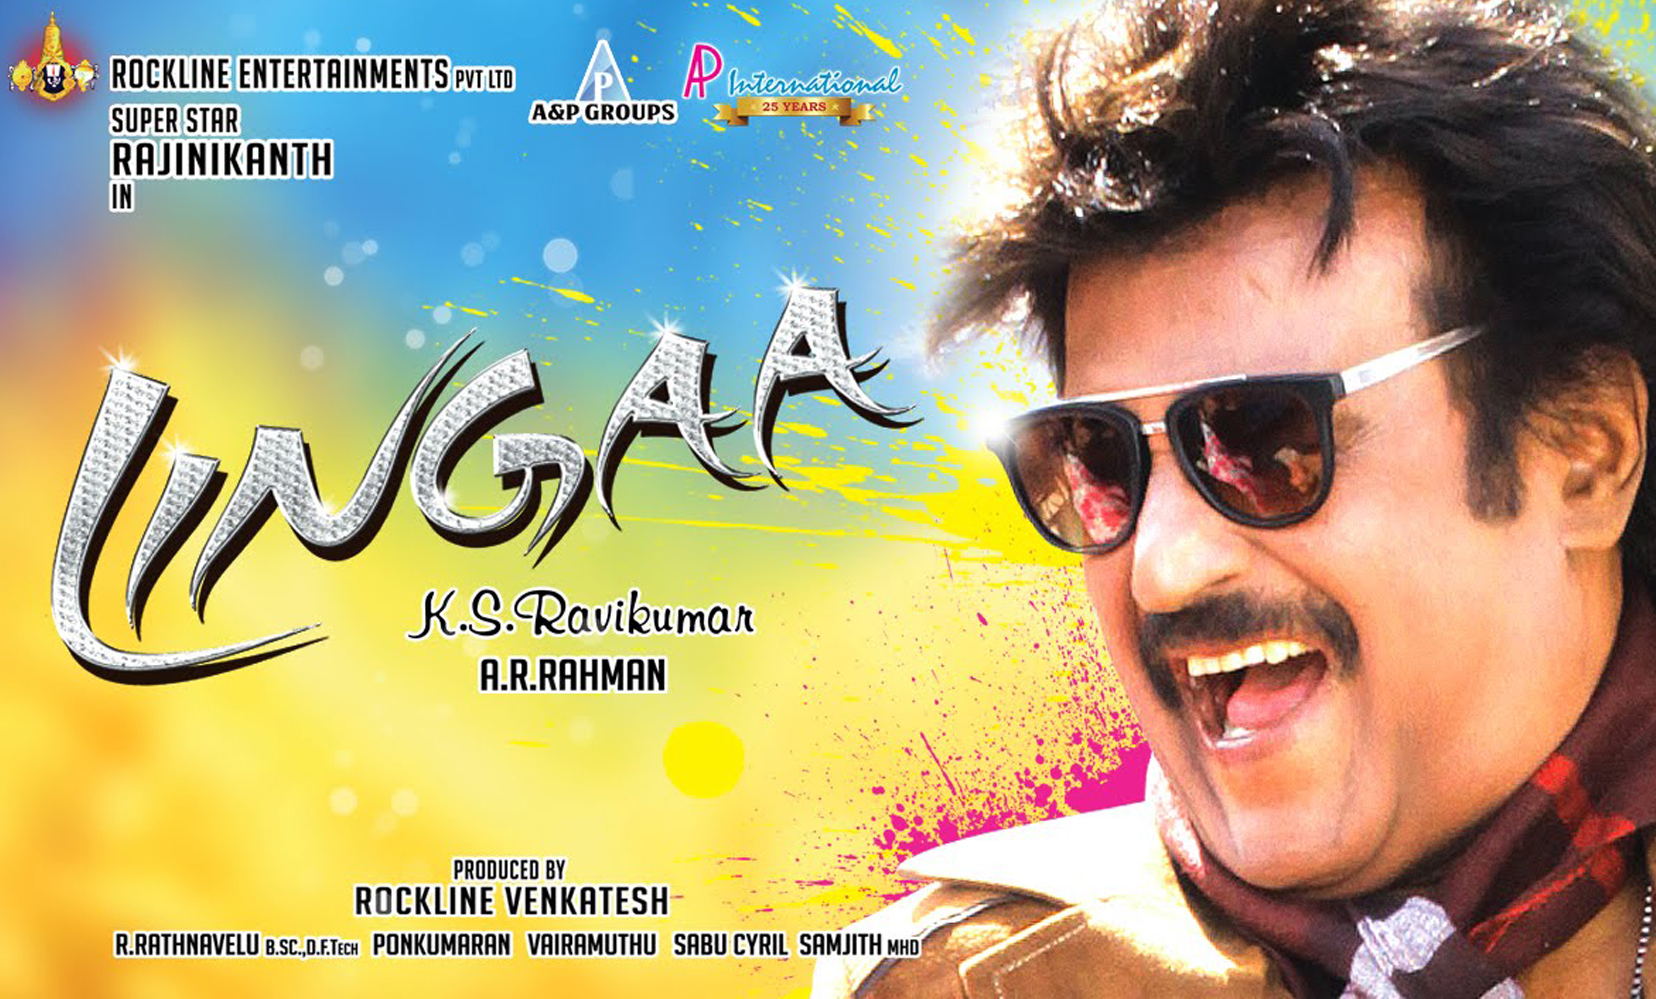 Rajni Mania all set to hit again-Lingaa Movie-Rajnikanth-Sonakshi Sinha-Anushka Shetty-Onlookers Media